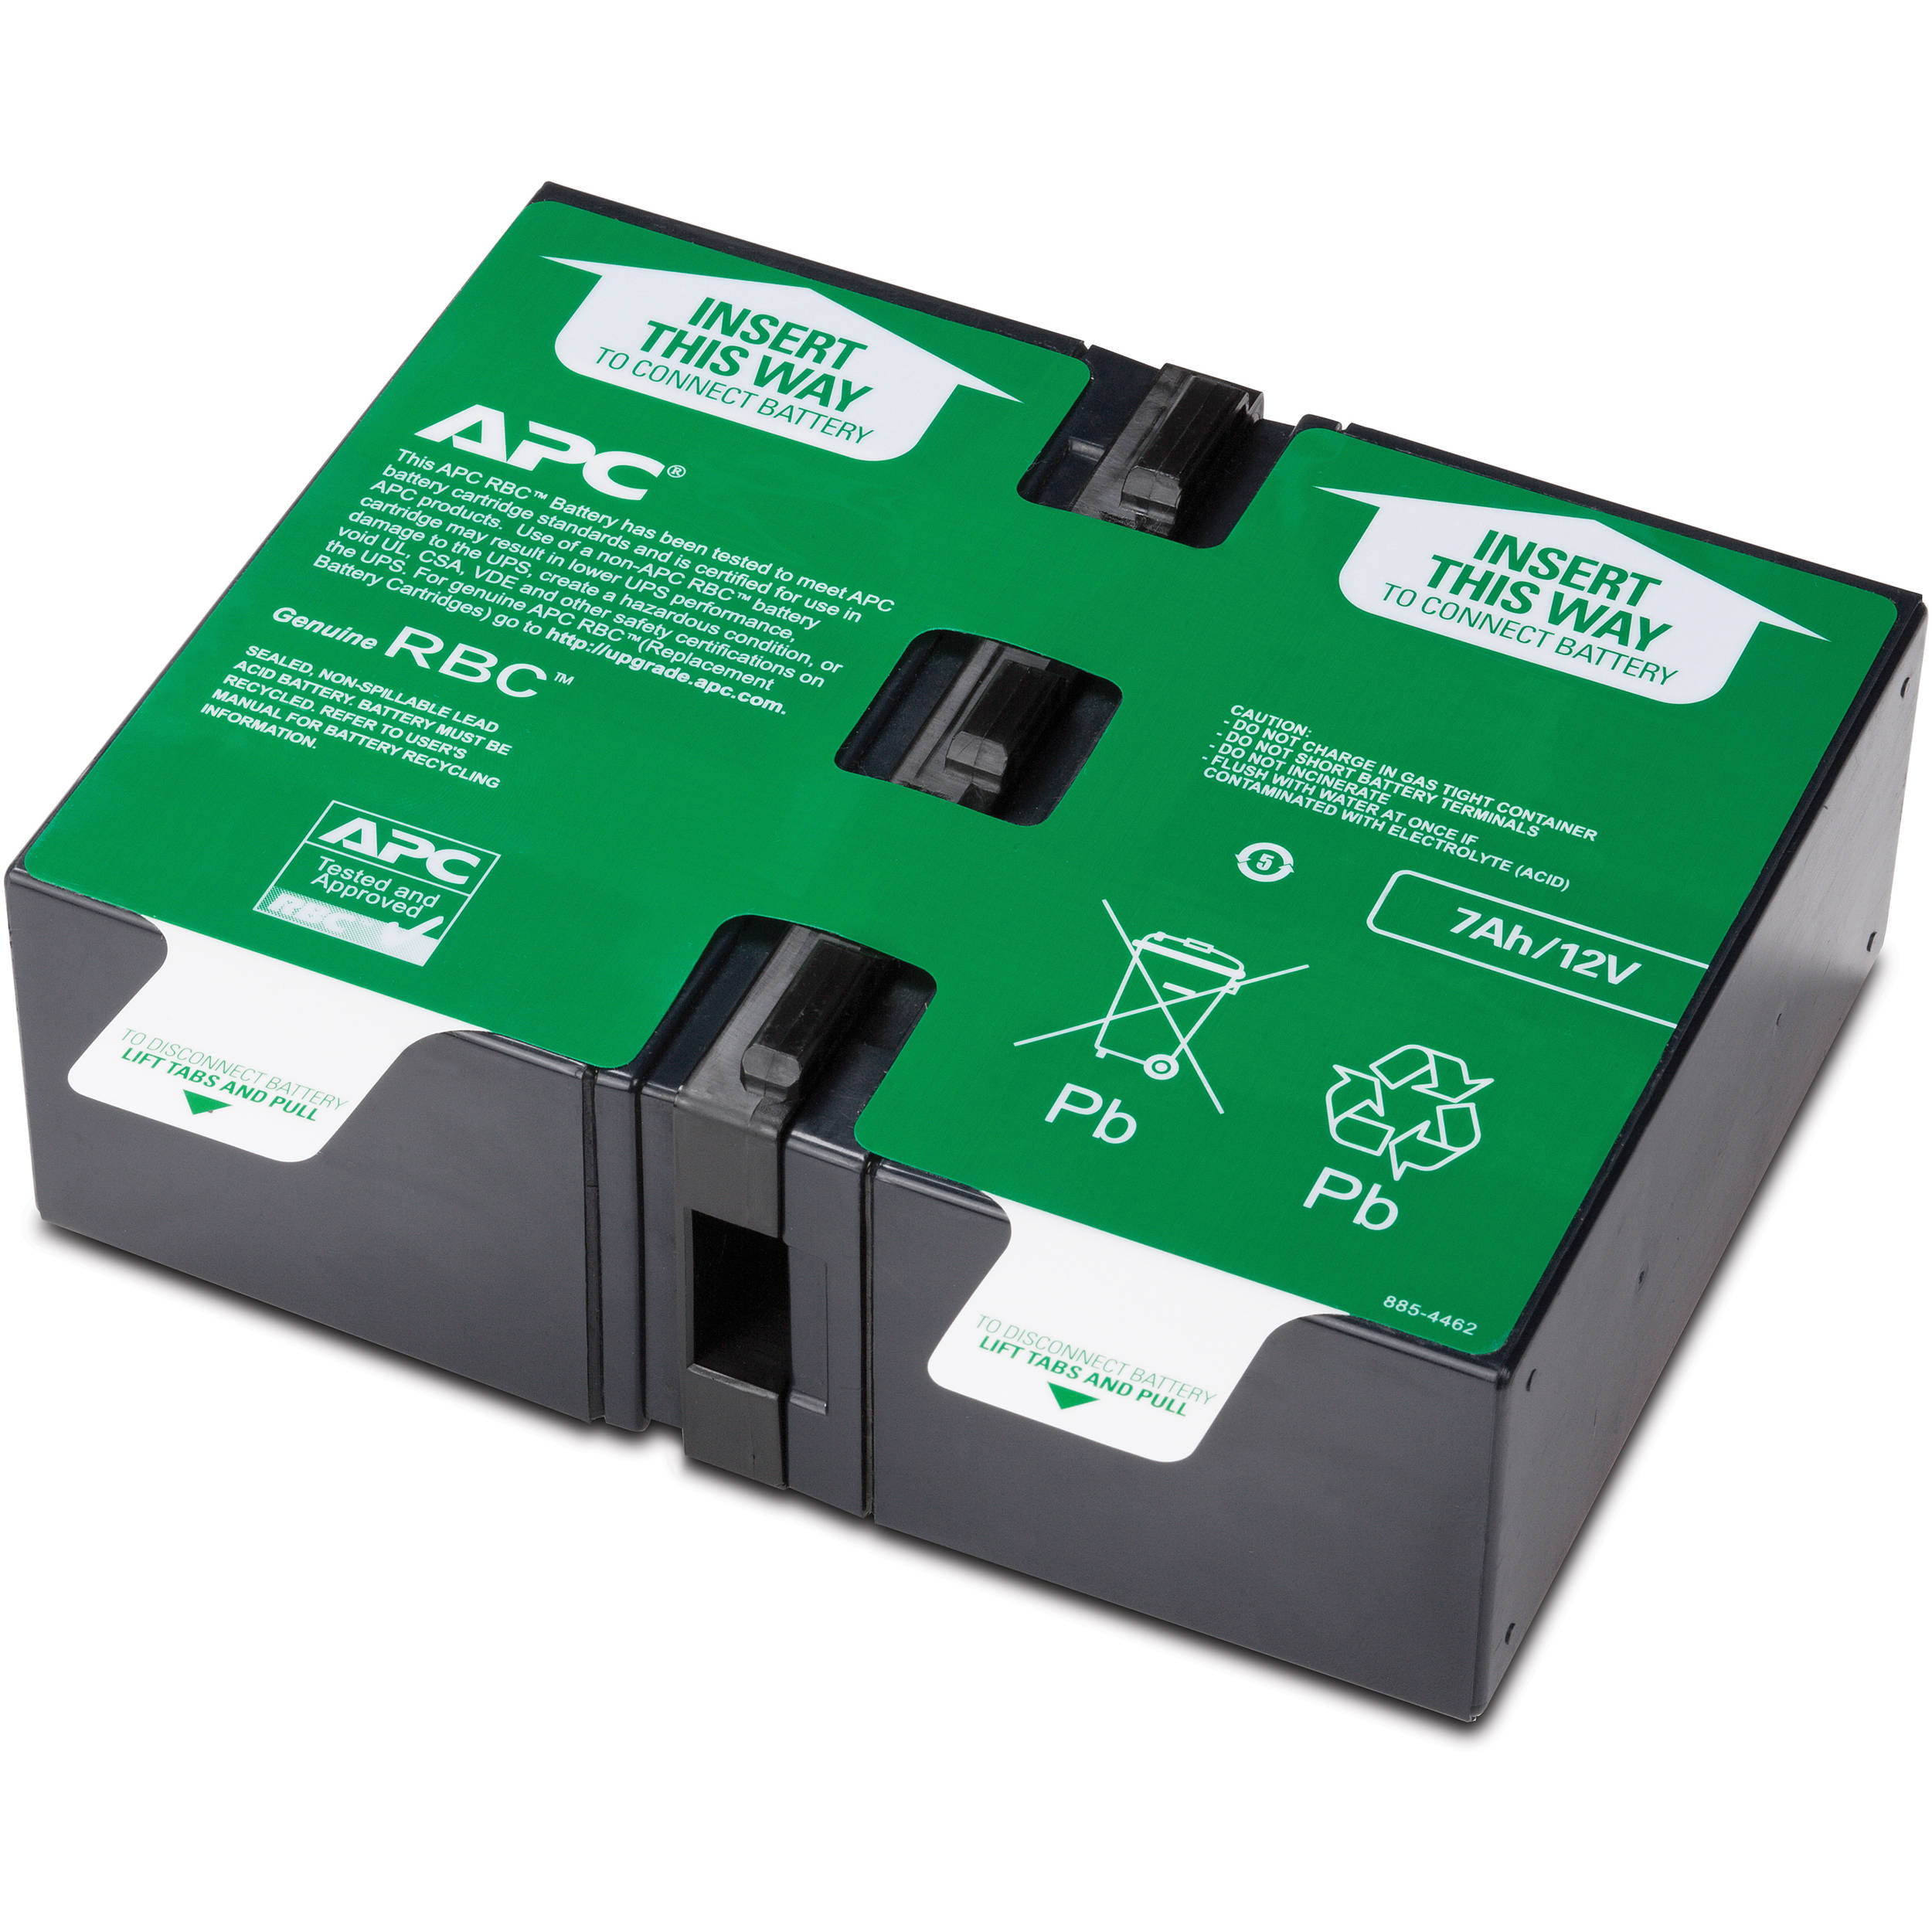 Apc replacement battery 4